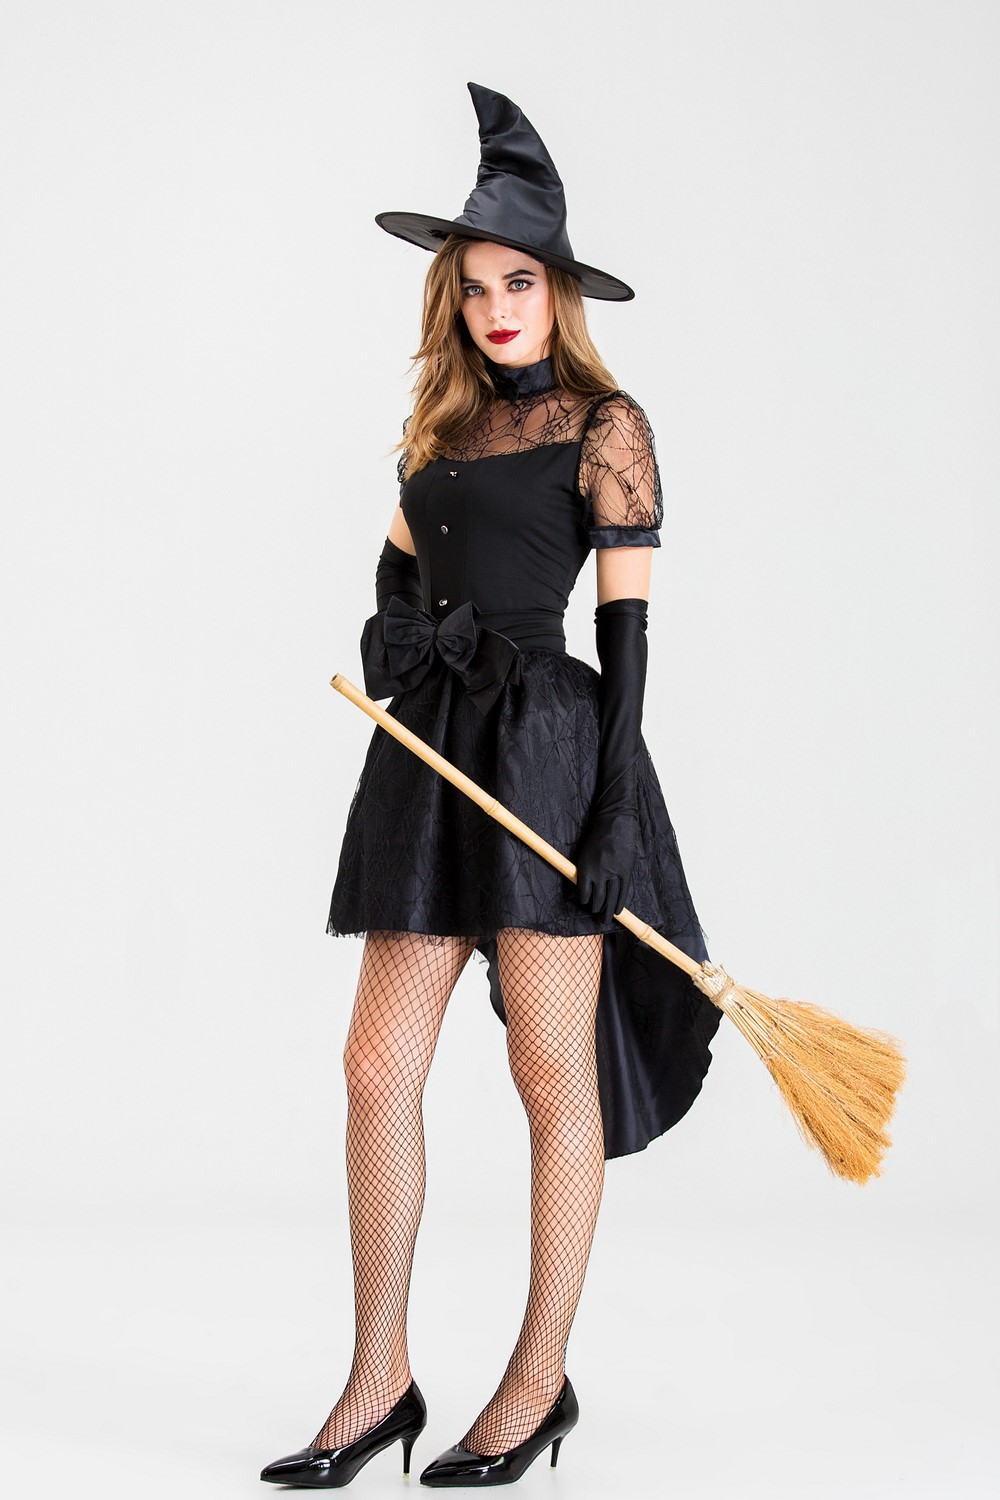 Witch stage costume tuxedo sexy witch game Costume Halloween Costume Adult Black